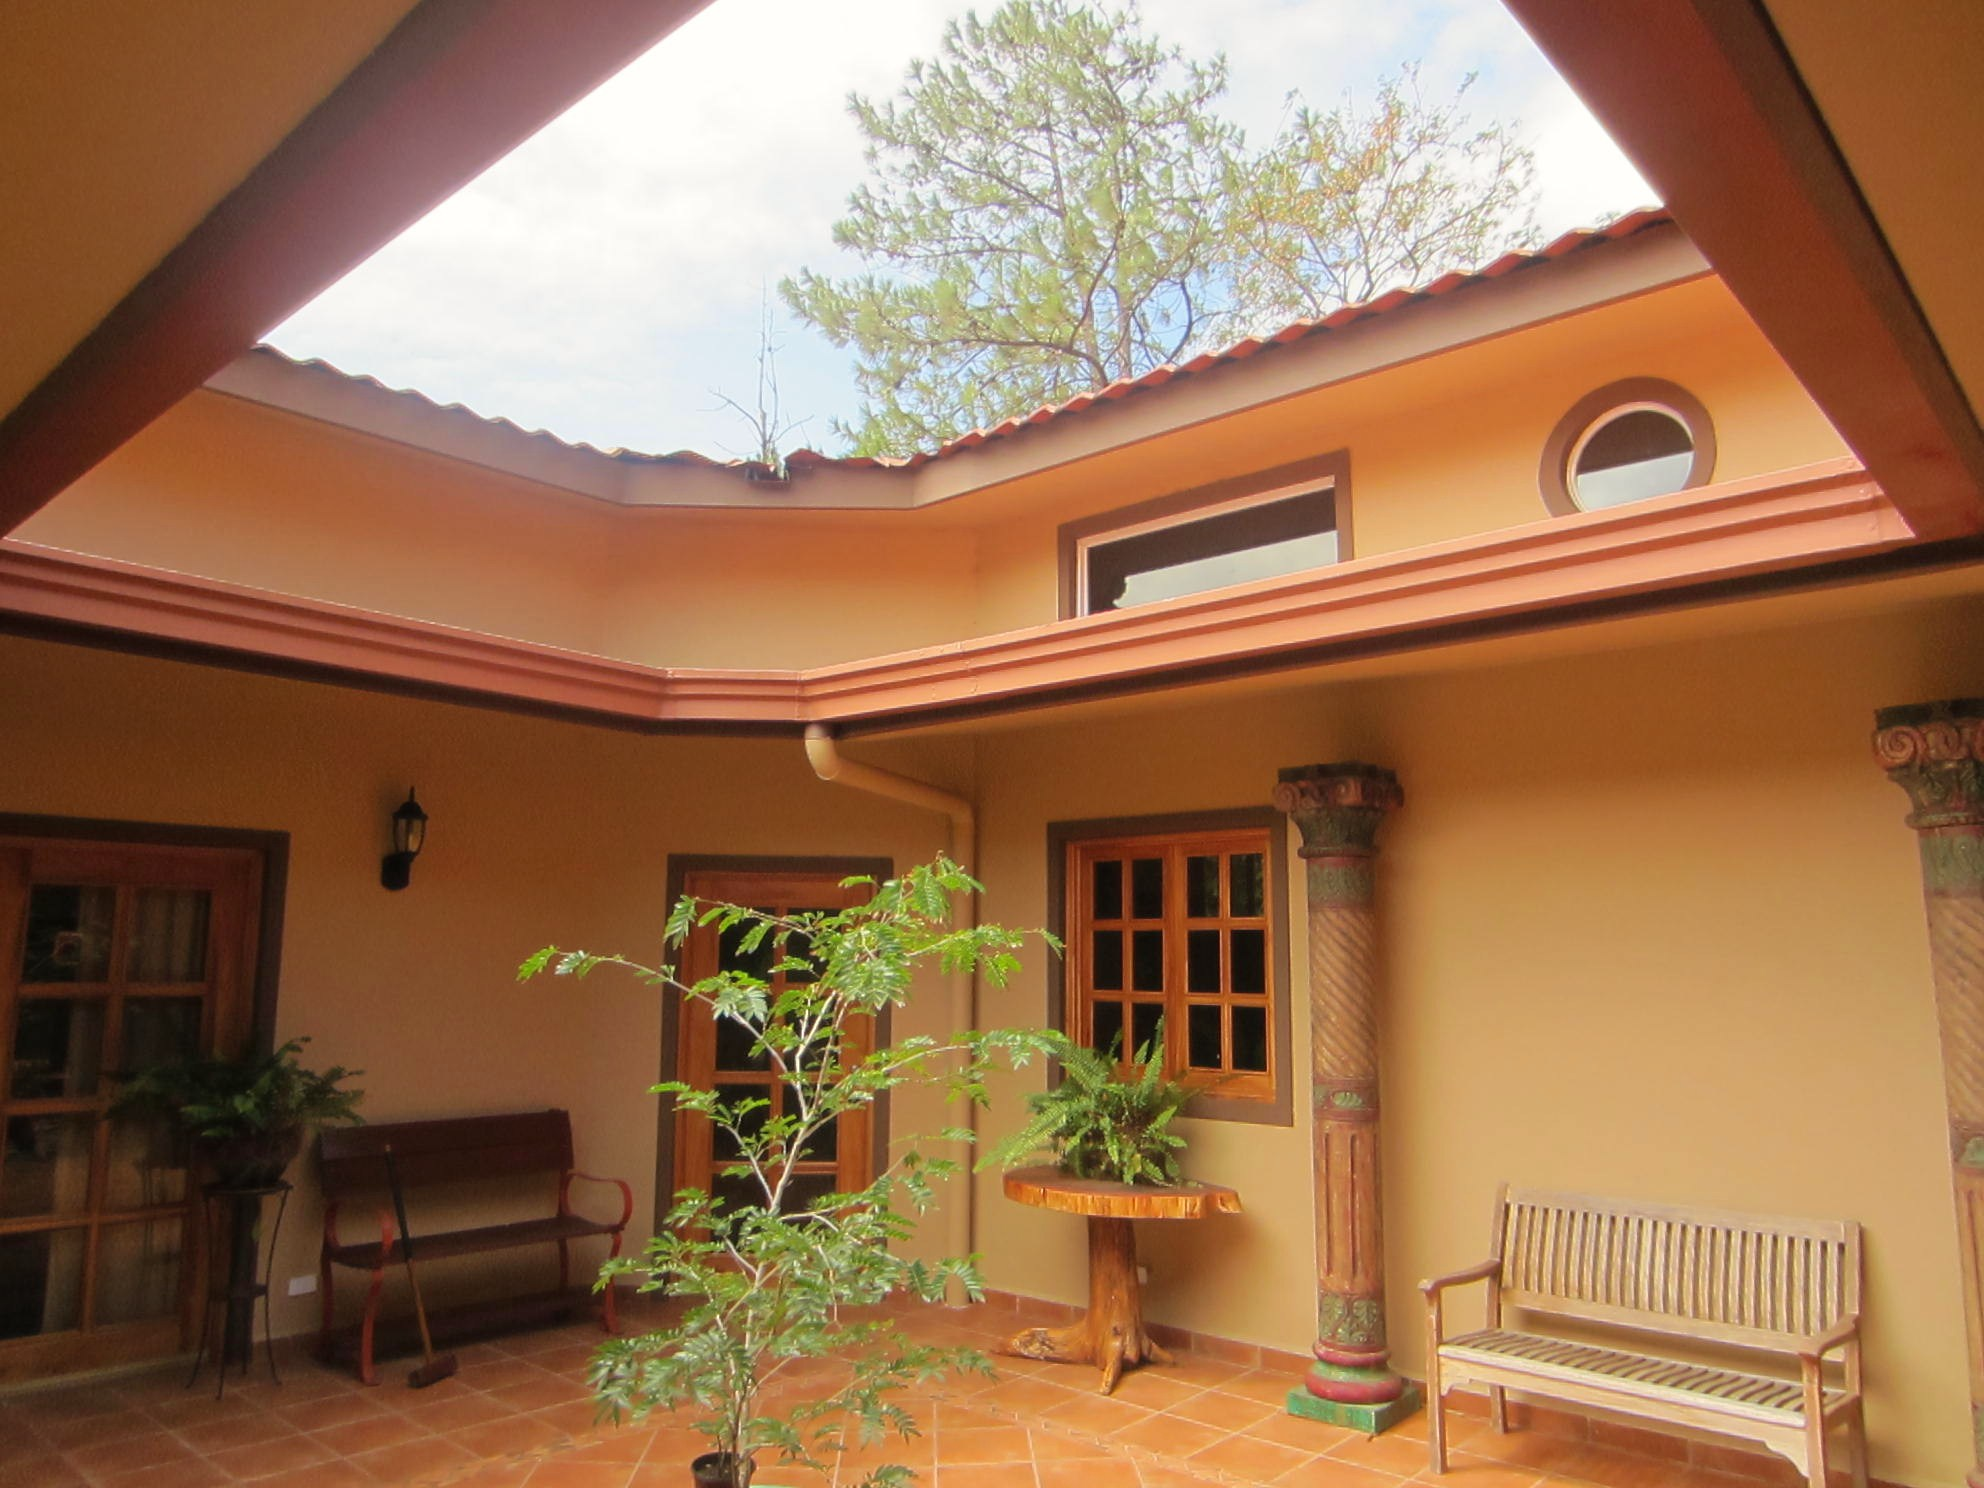 Beautiful Mountain View Home For Sale in Boquete, Chiriqui ...